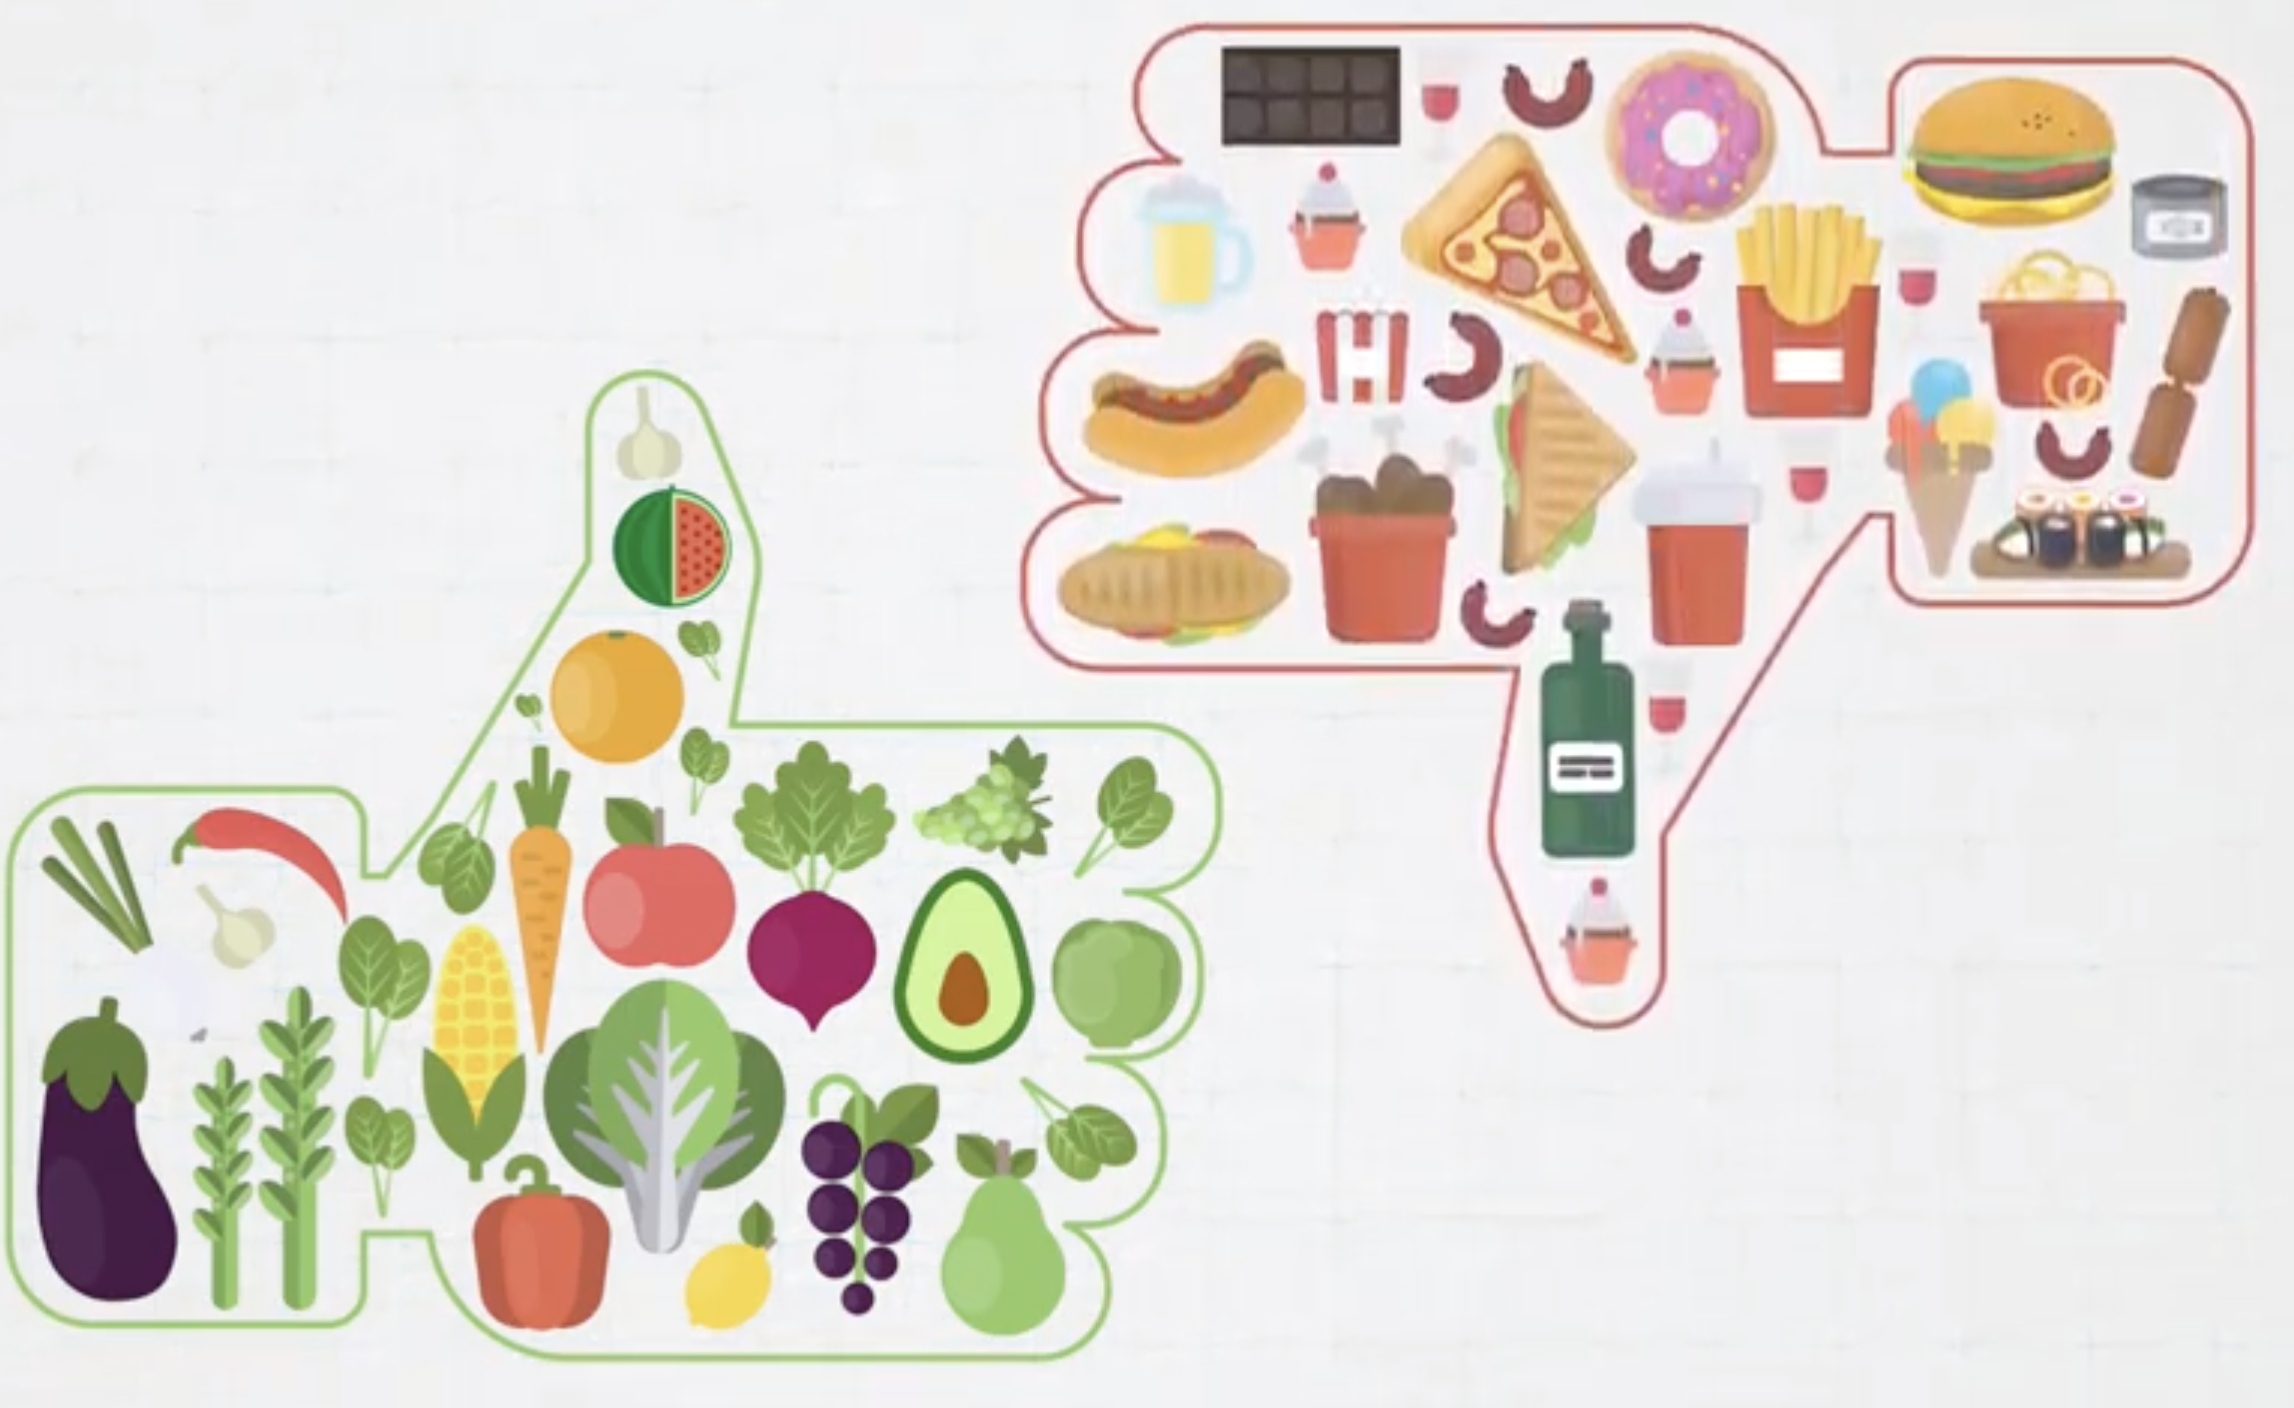 Solve It: Food and Energy - To research the type and amount of food currently being served at your school and design a solution that stays within the same calorie requirements but increases energy and/or consumption.